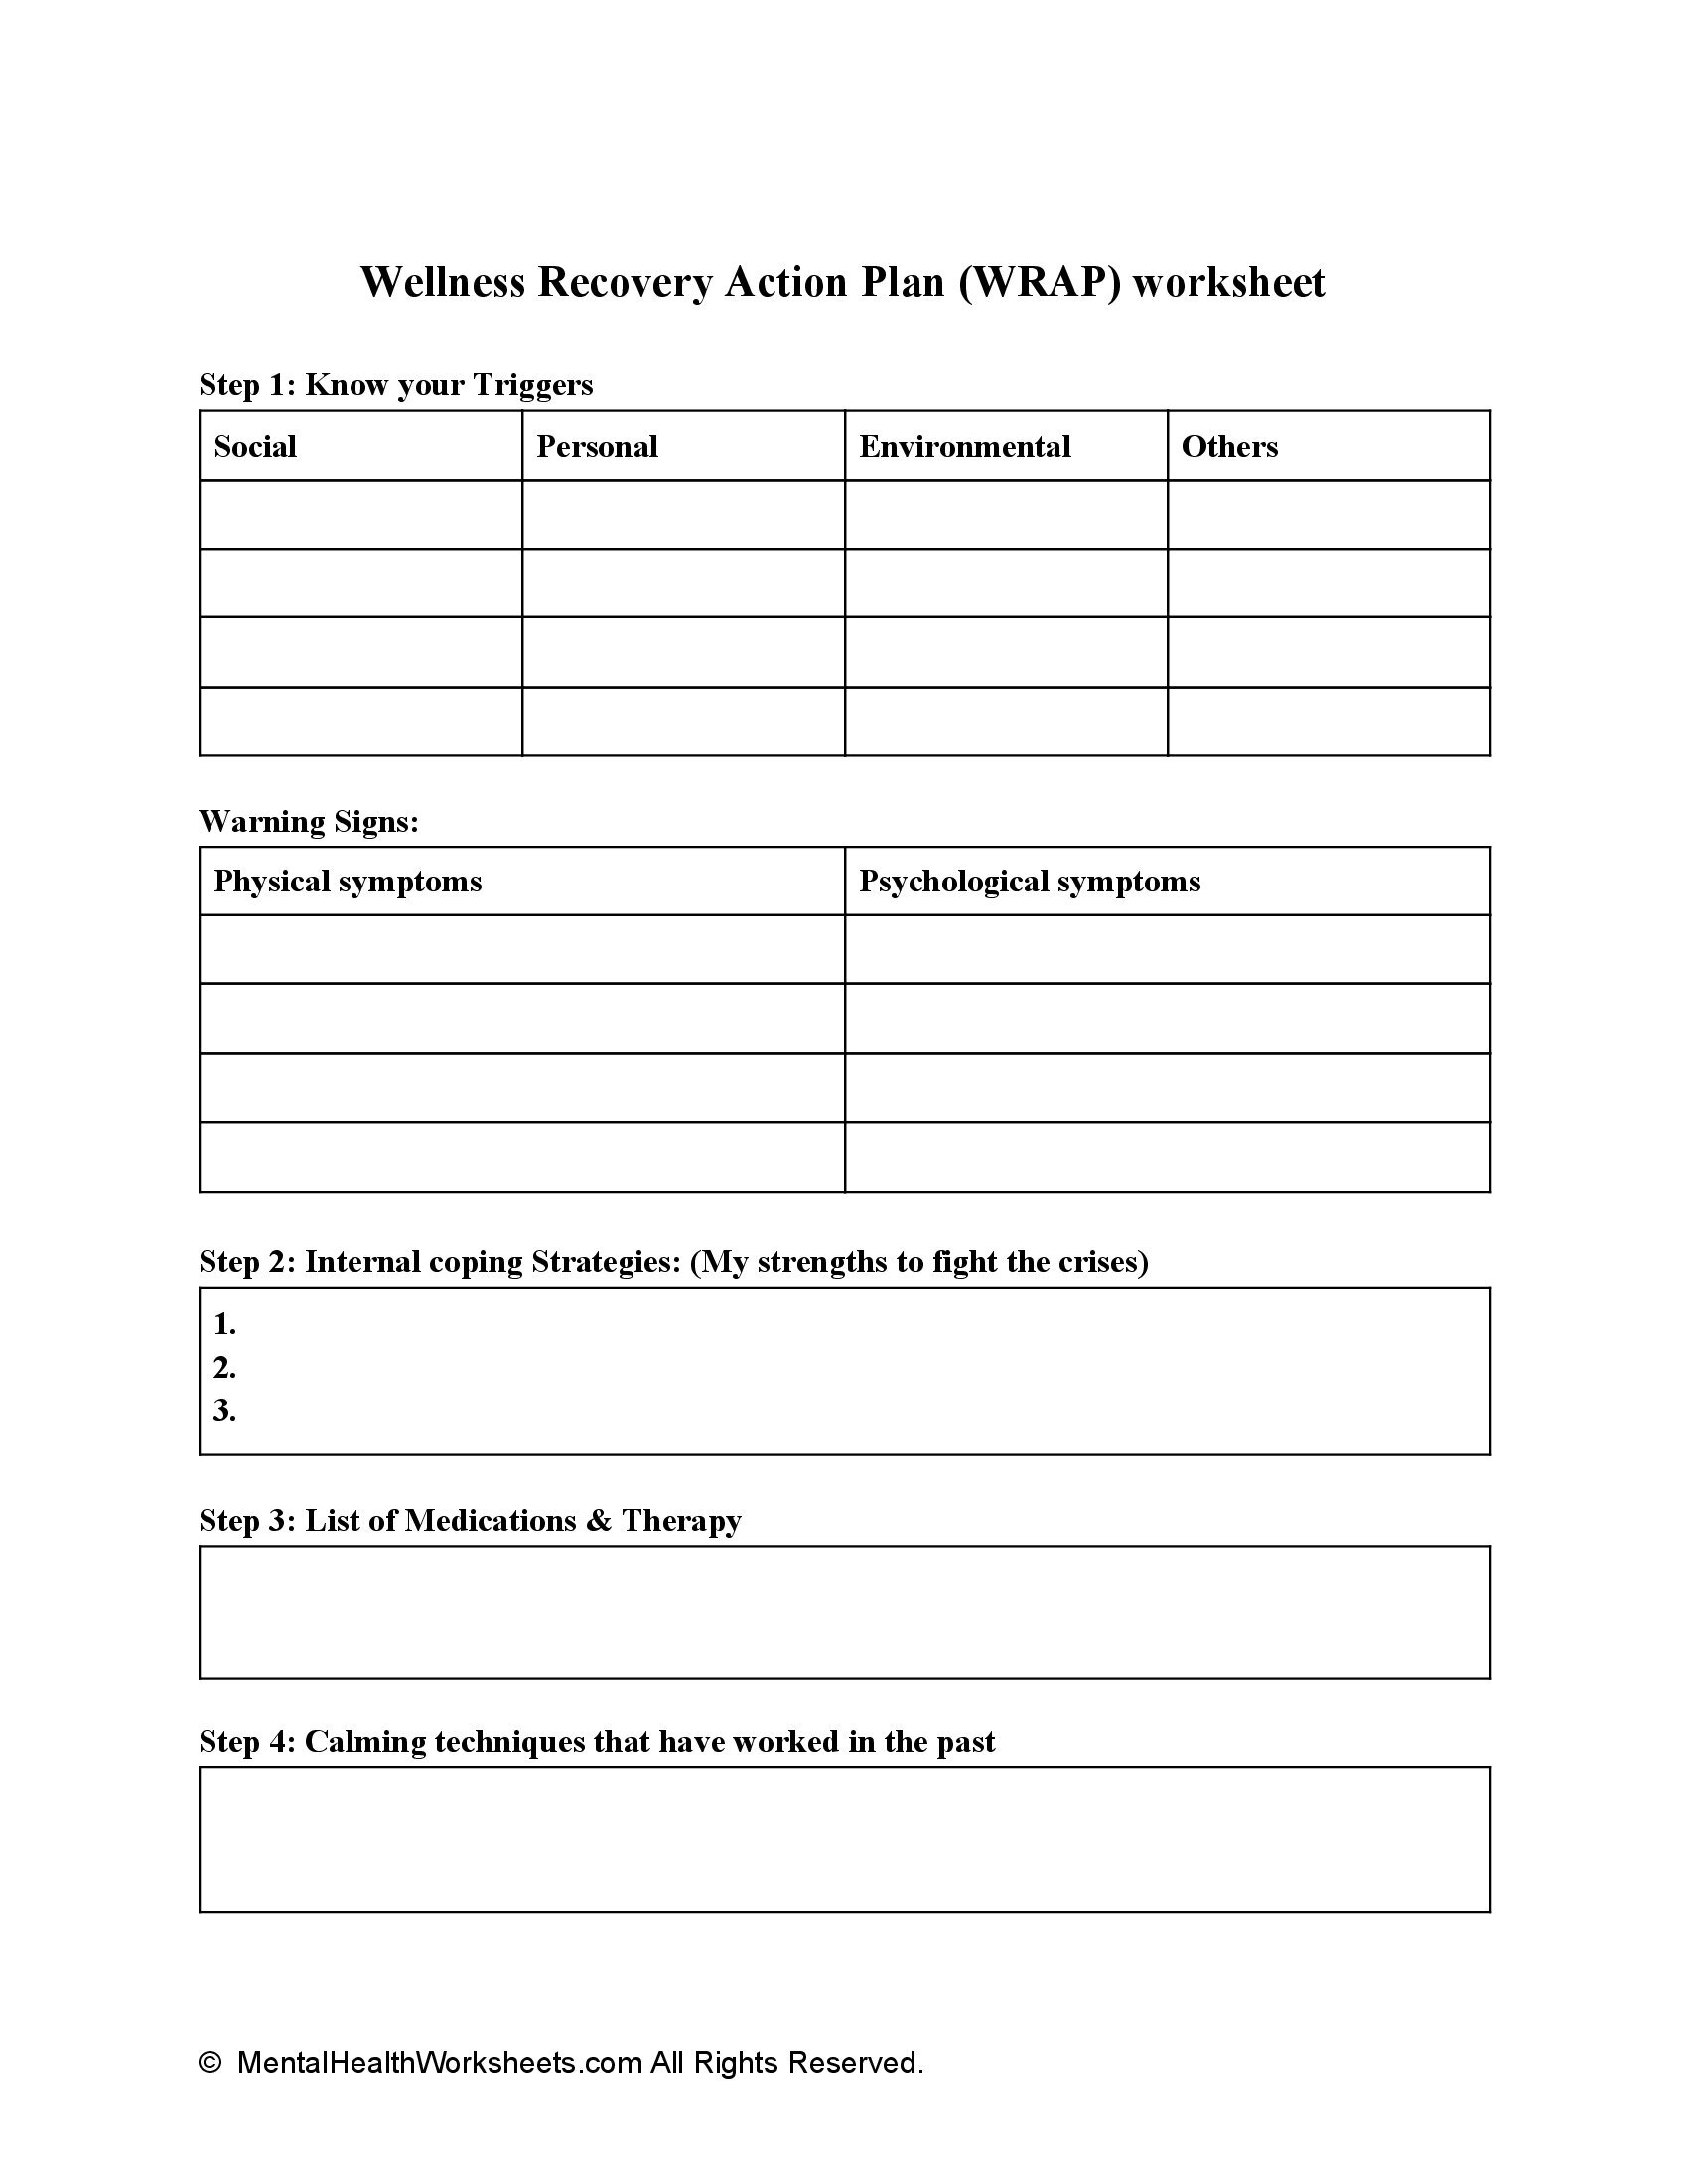 Wellness Recovery Action Plan (WRAP) worksheet